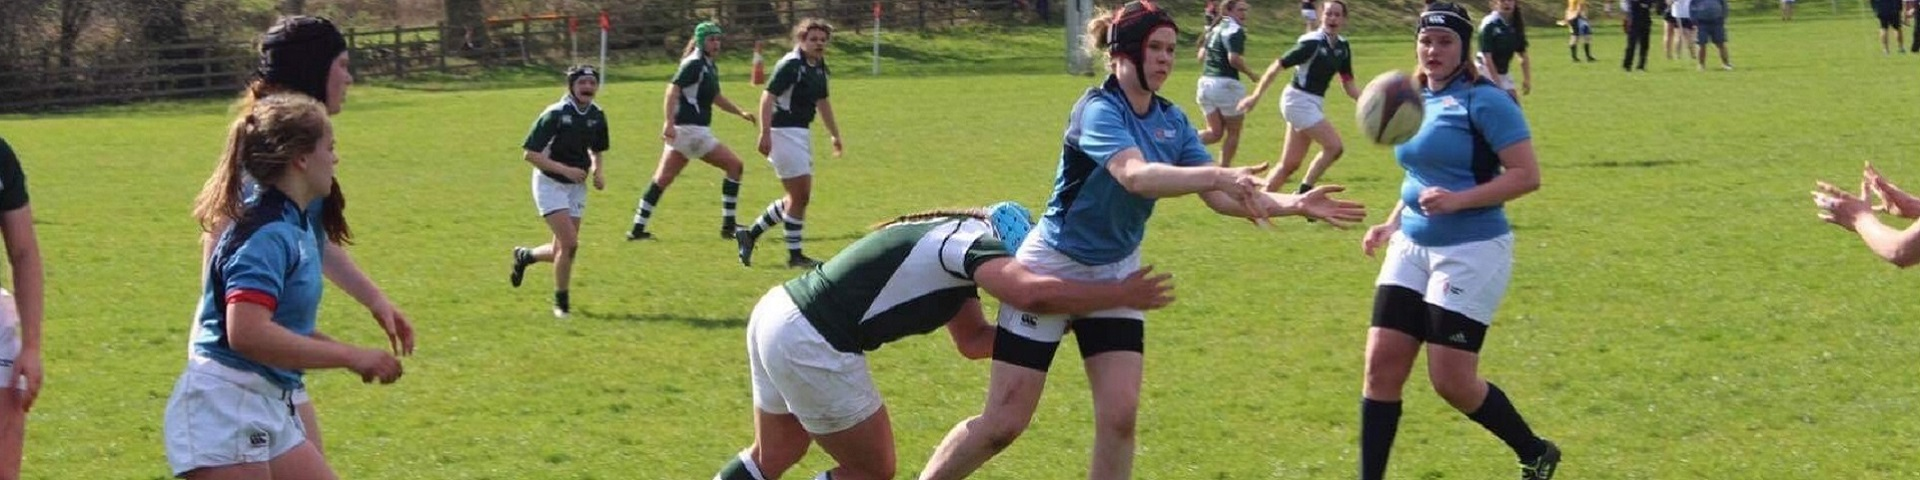 Lorna playing rugby